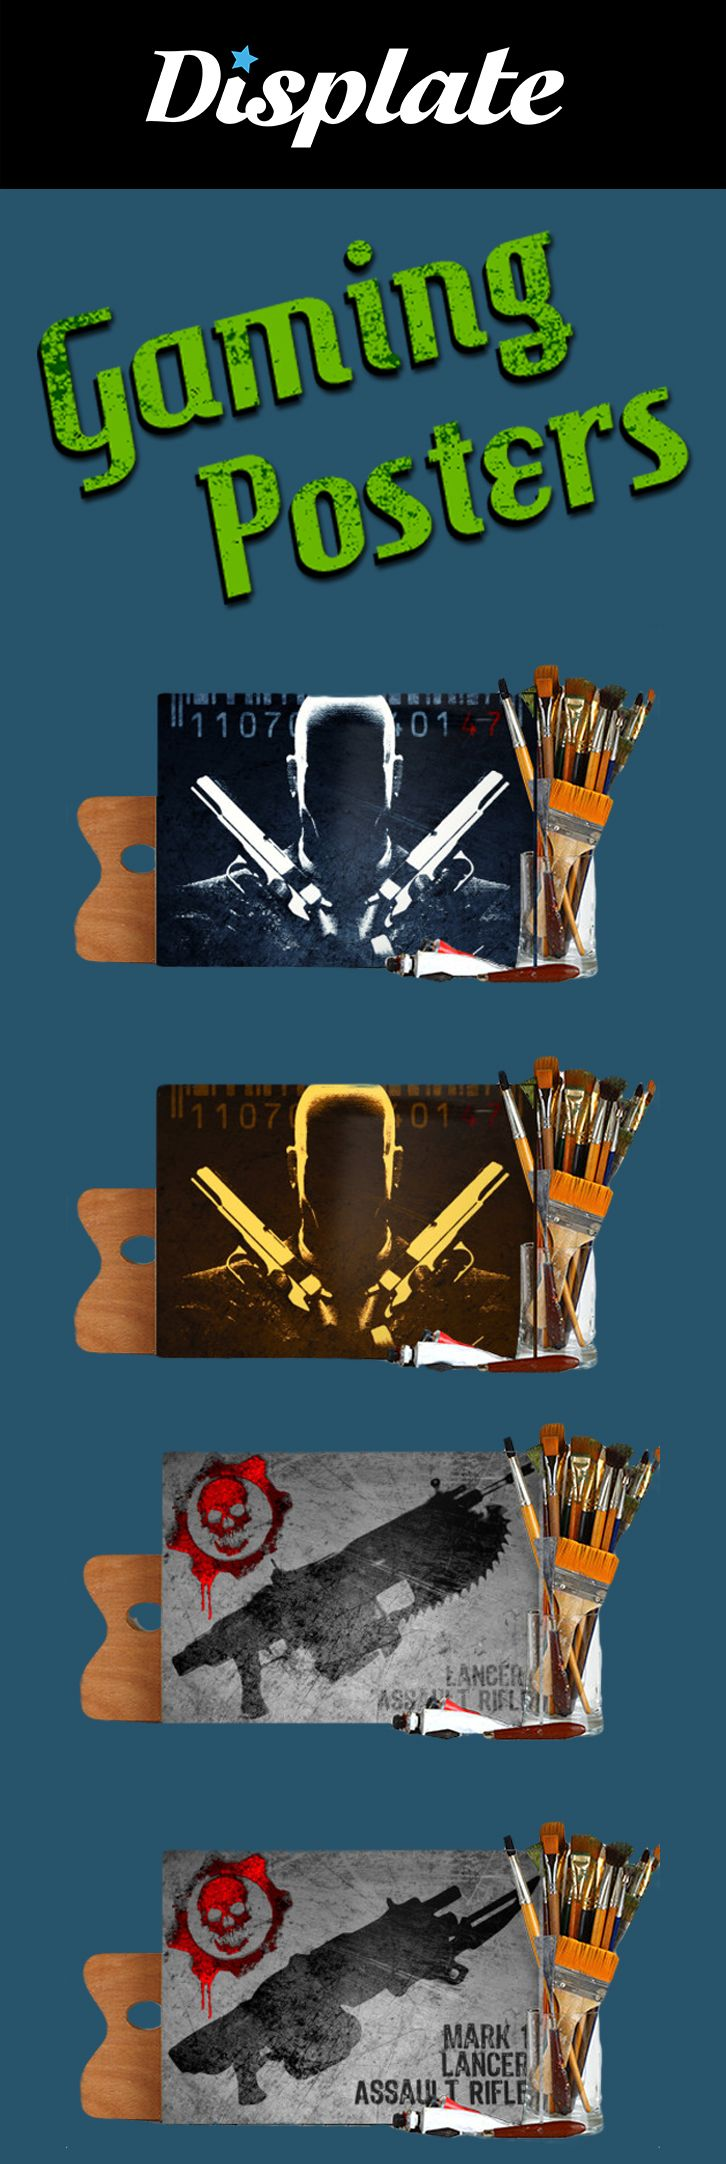 Gaming Posters on Metal Plates. 15% OFF on any order placed this Weekend with code: 15weekend . #gaming #gamer #gifts #discount #sales #save #gamingposters #posters #homedecor #gamersroom #gamer #videogames #giftsforhim